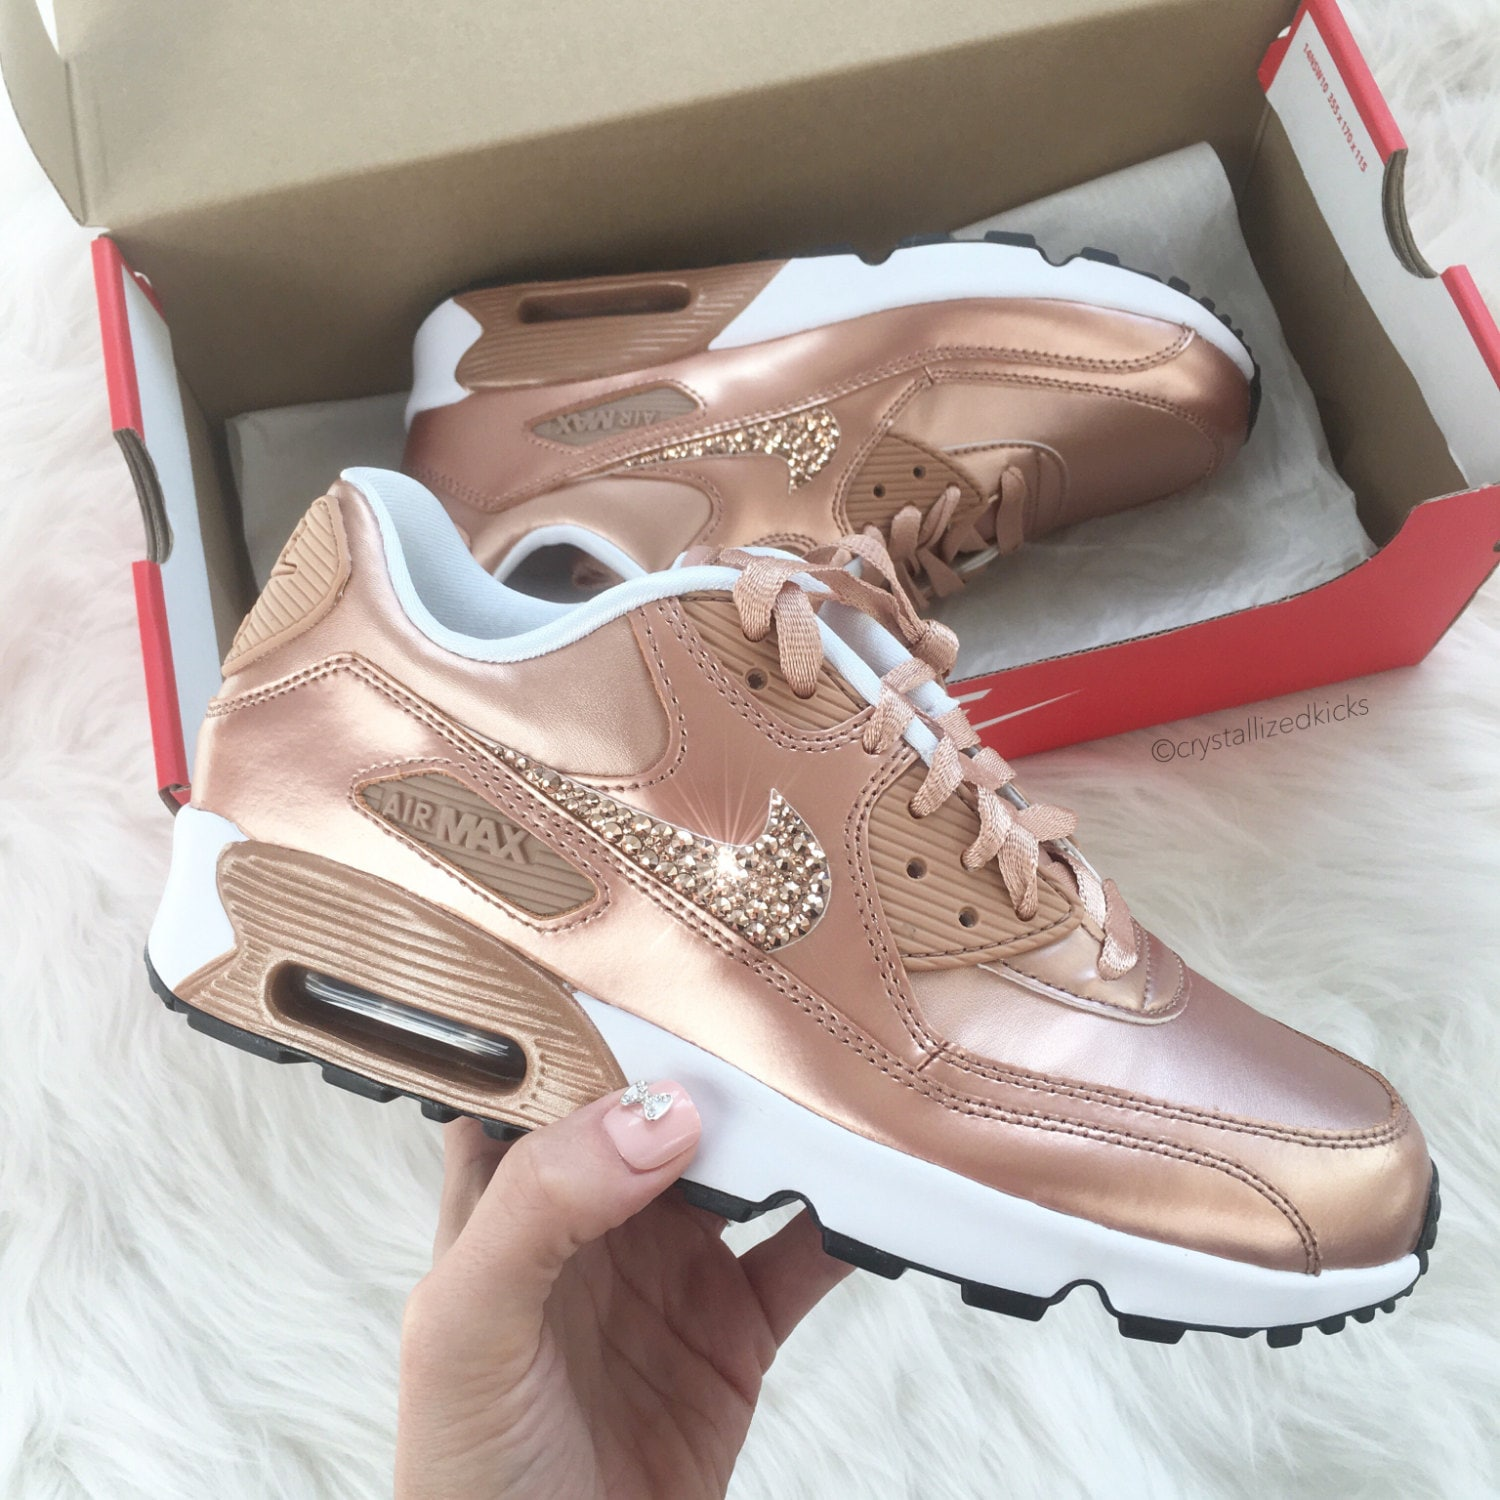 size 40 4ceed e539a Swarovski bling Women s Nike Air Max 90 Rose Gold Sneakers   Etsy